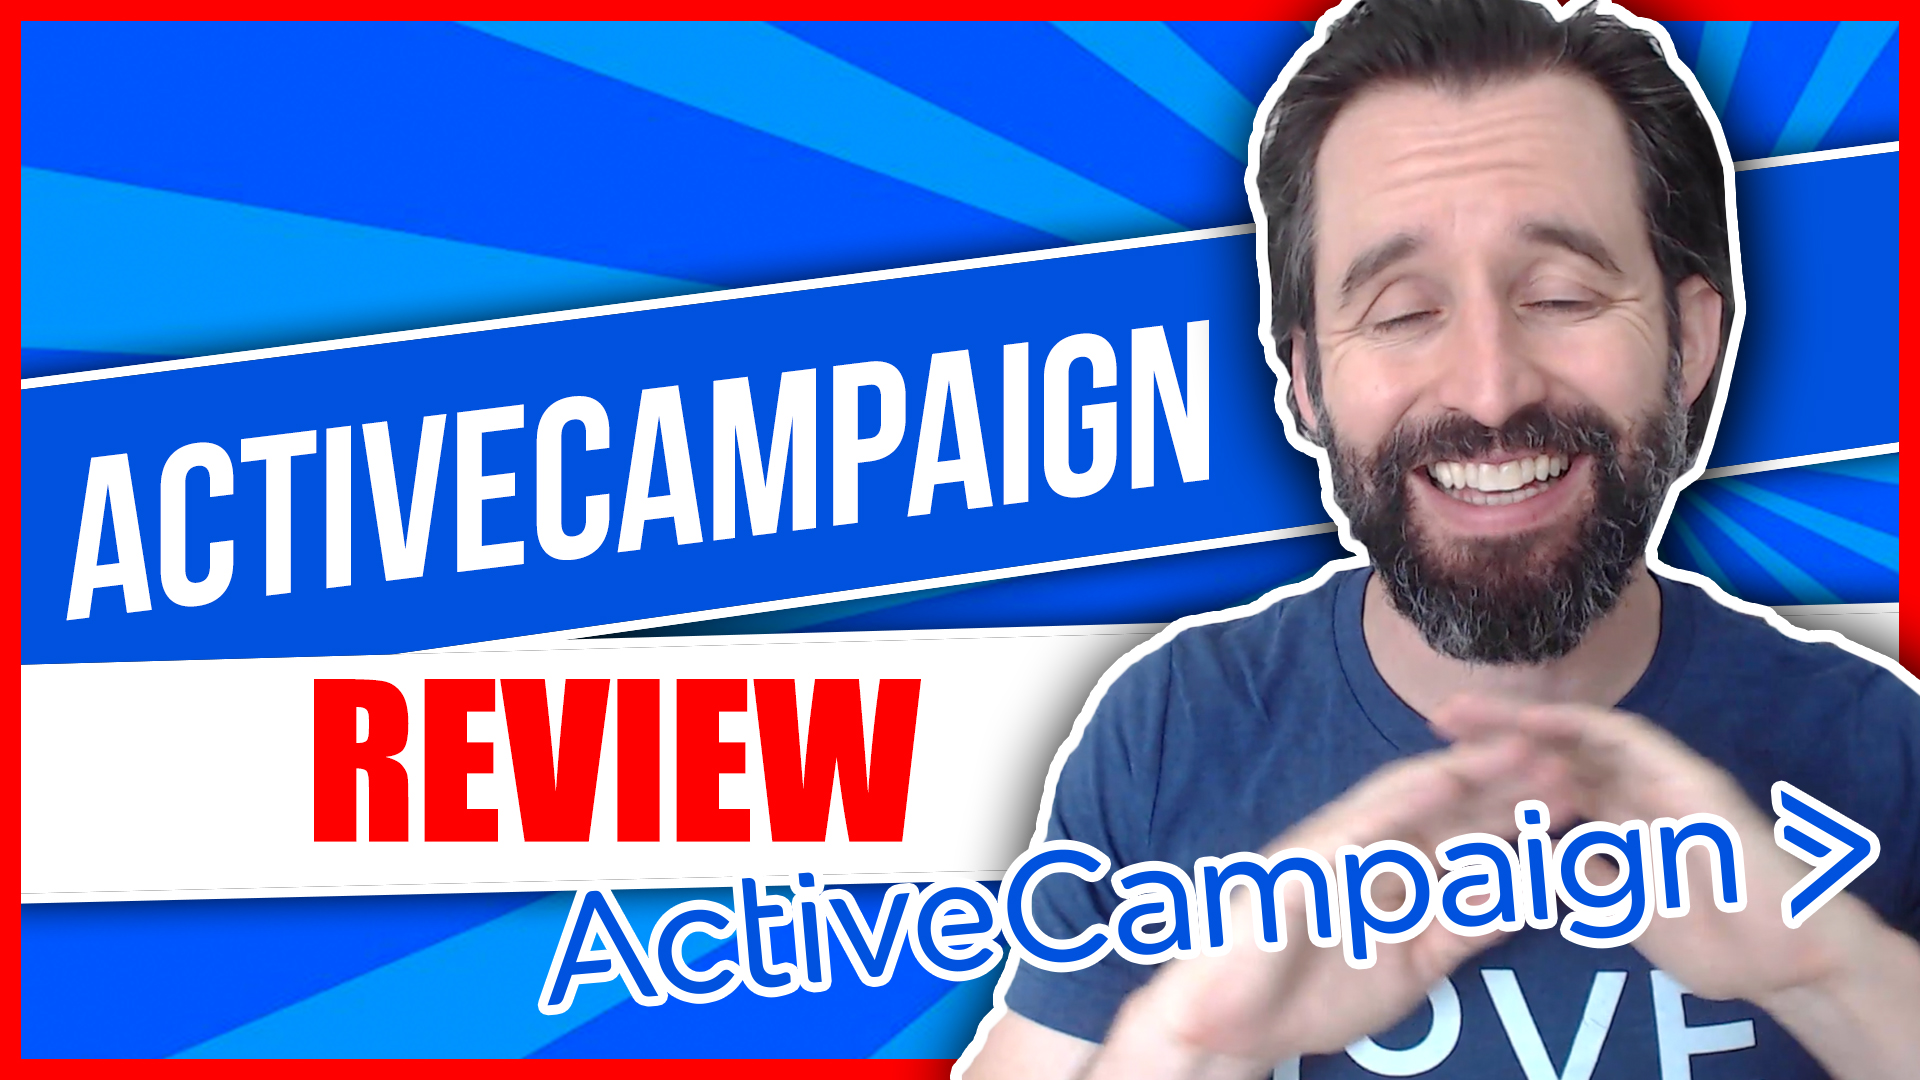 Compare Active Campaign With Convertkit